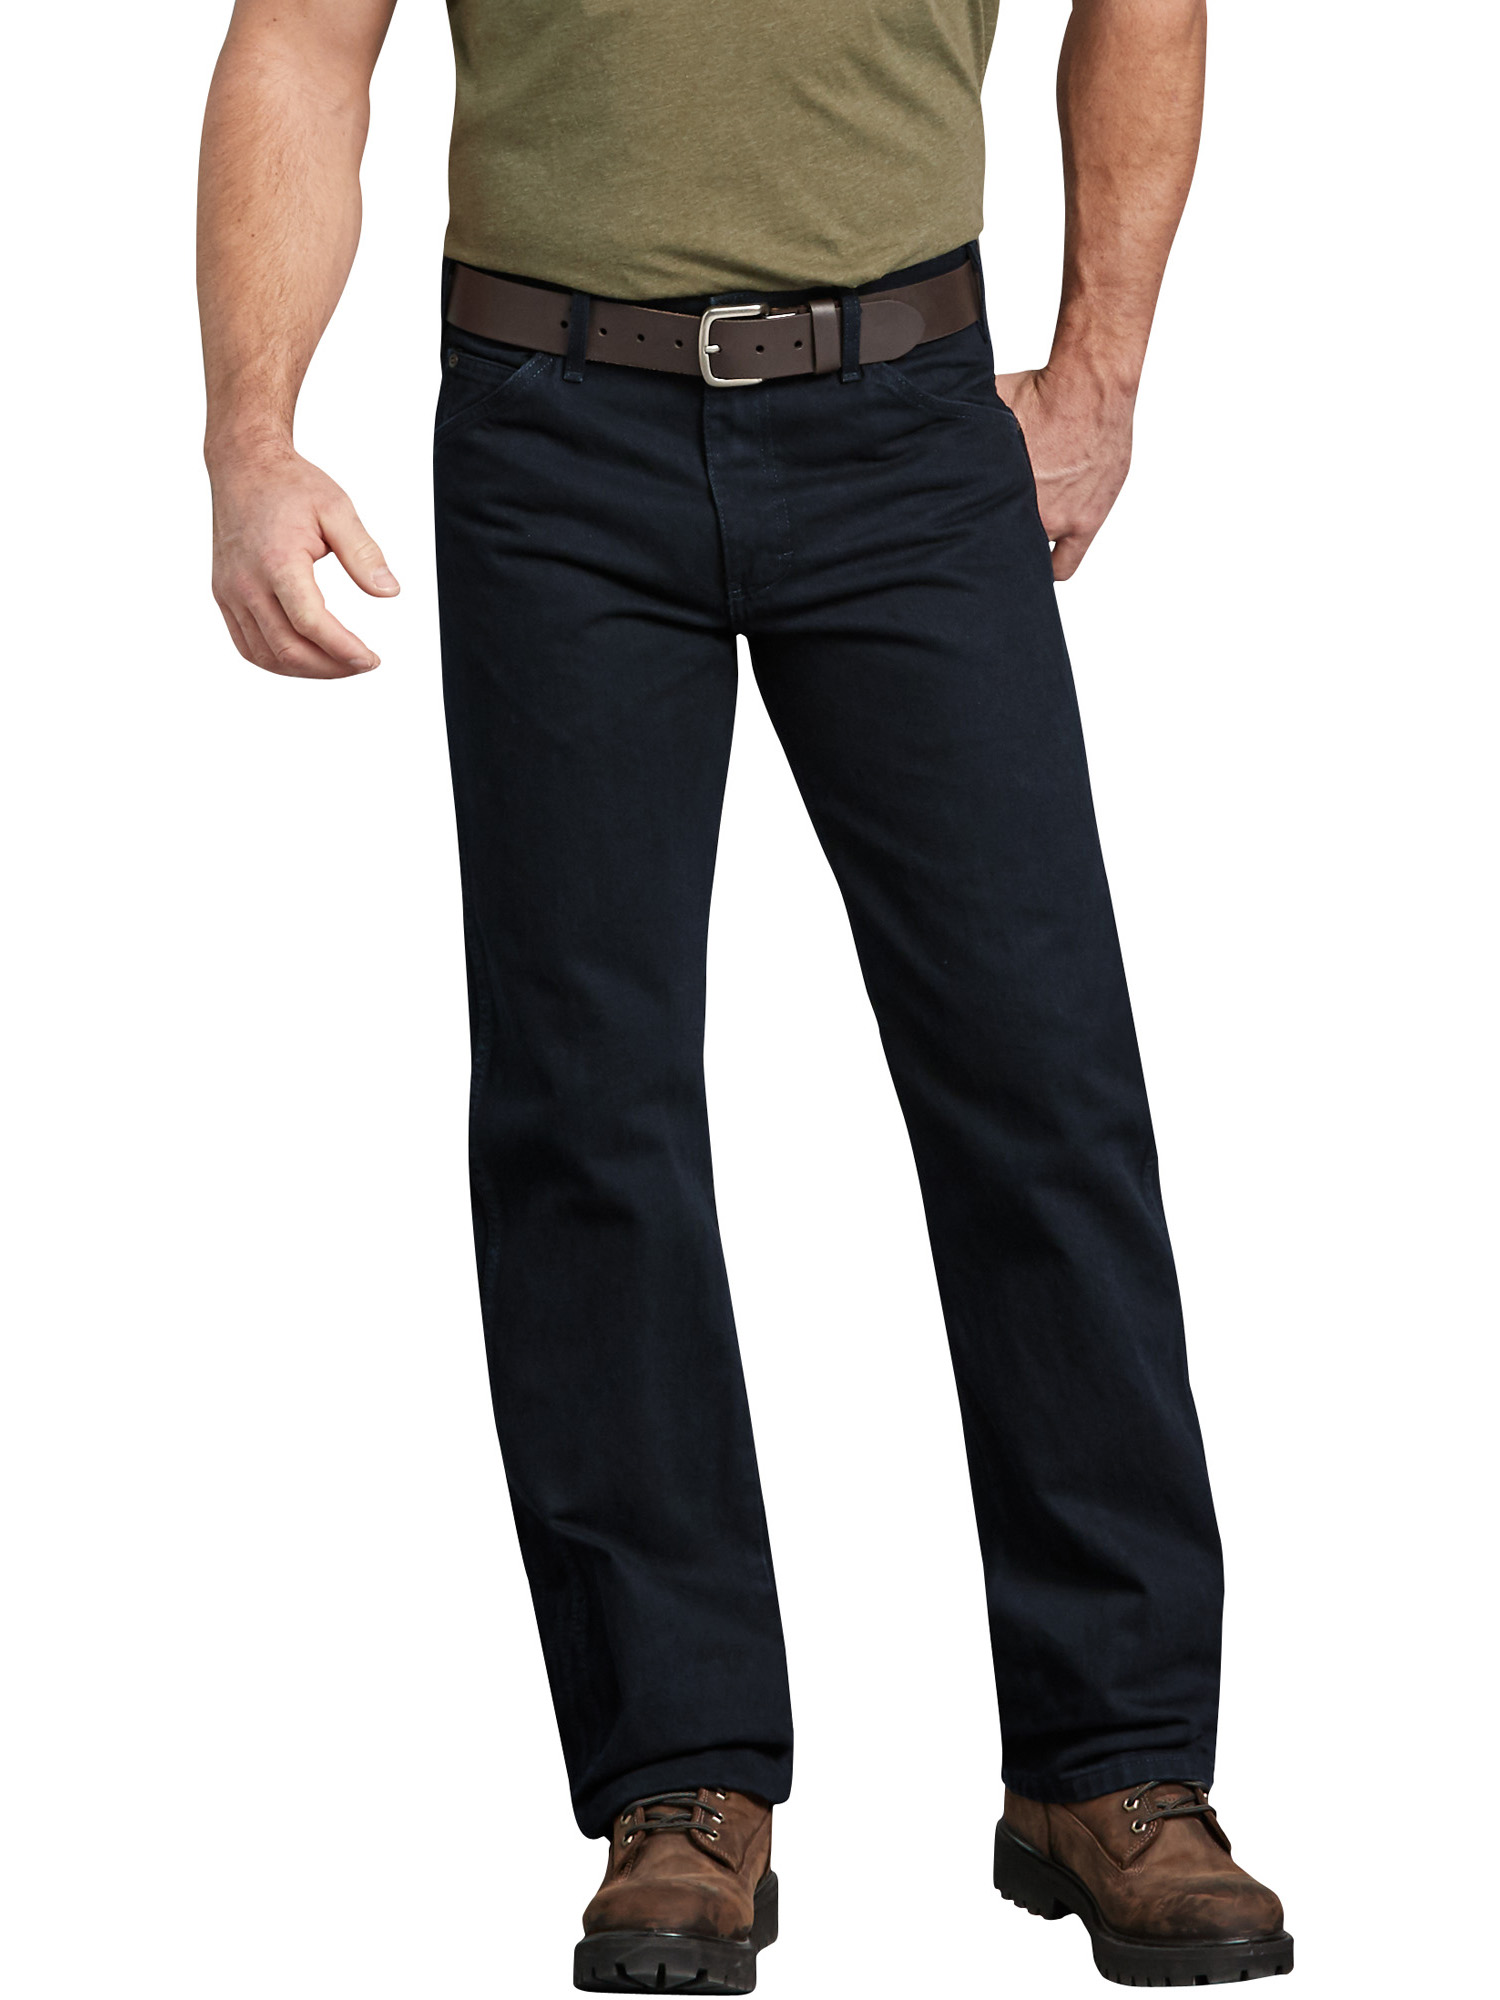 Men's Regular Fit 6 Pocket Jean with Multi-Use Pocket